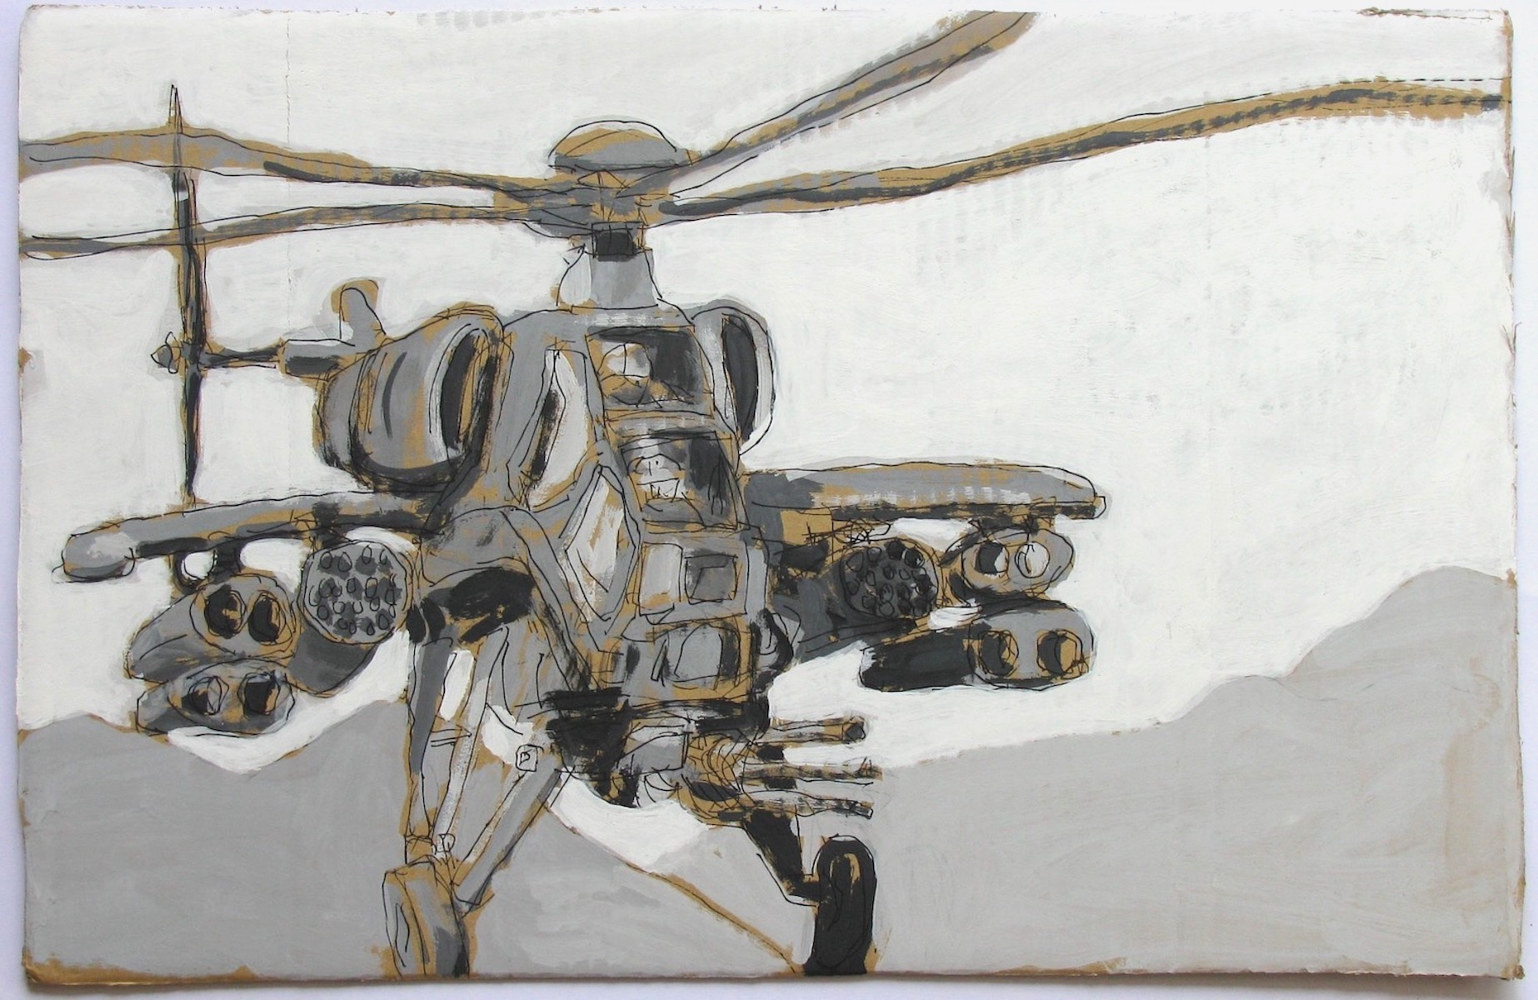 Acrylic painting Monochrome Helicopter  by Gary Jenkins